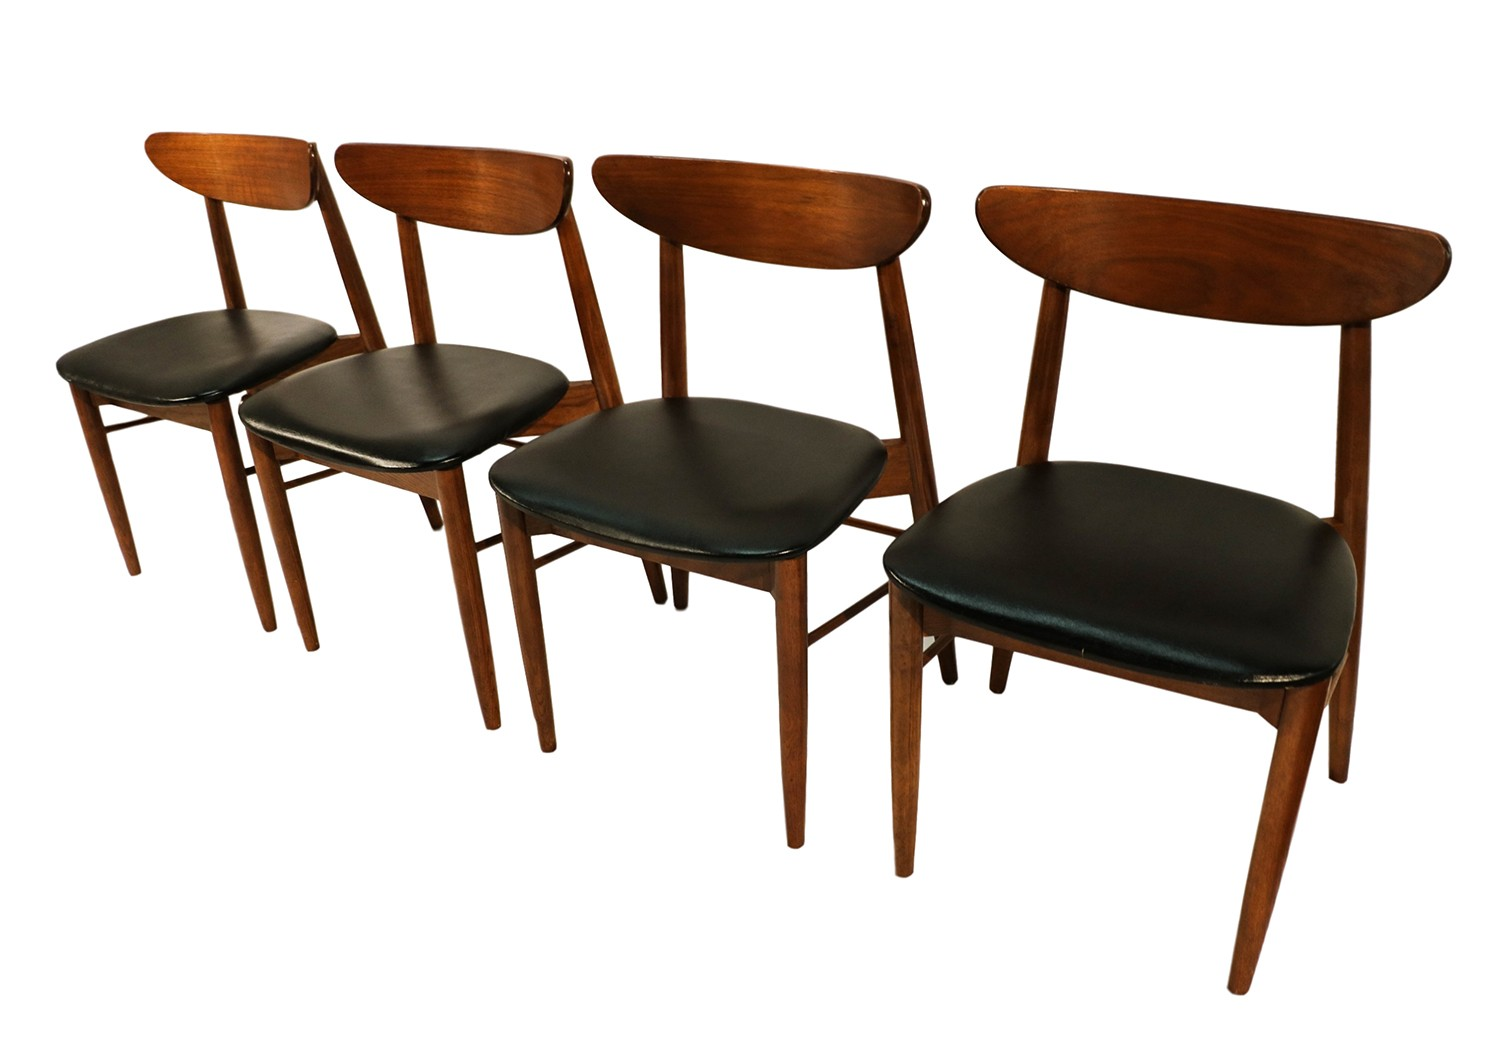 lane mid century modern walnut dining chairs. Black Bedroom Furniture Sets. Home Design Ideas